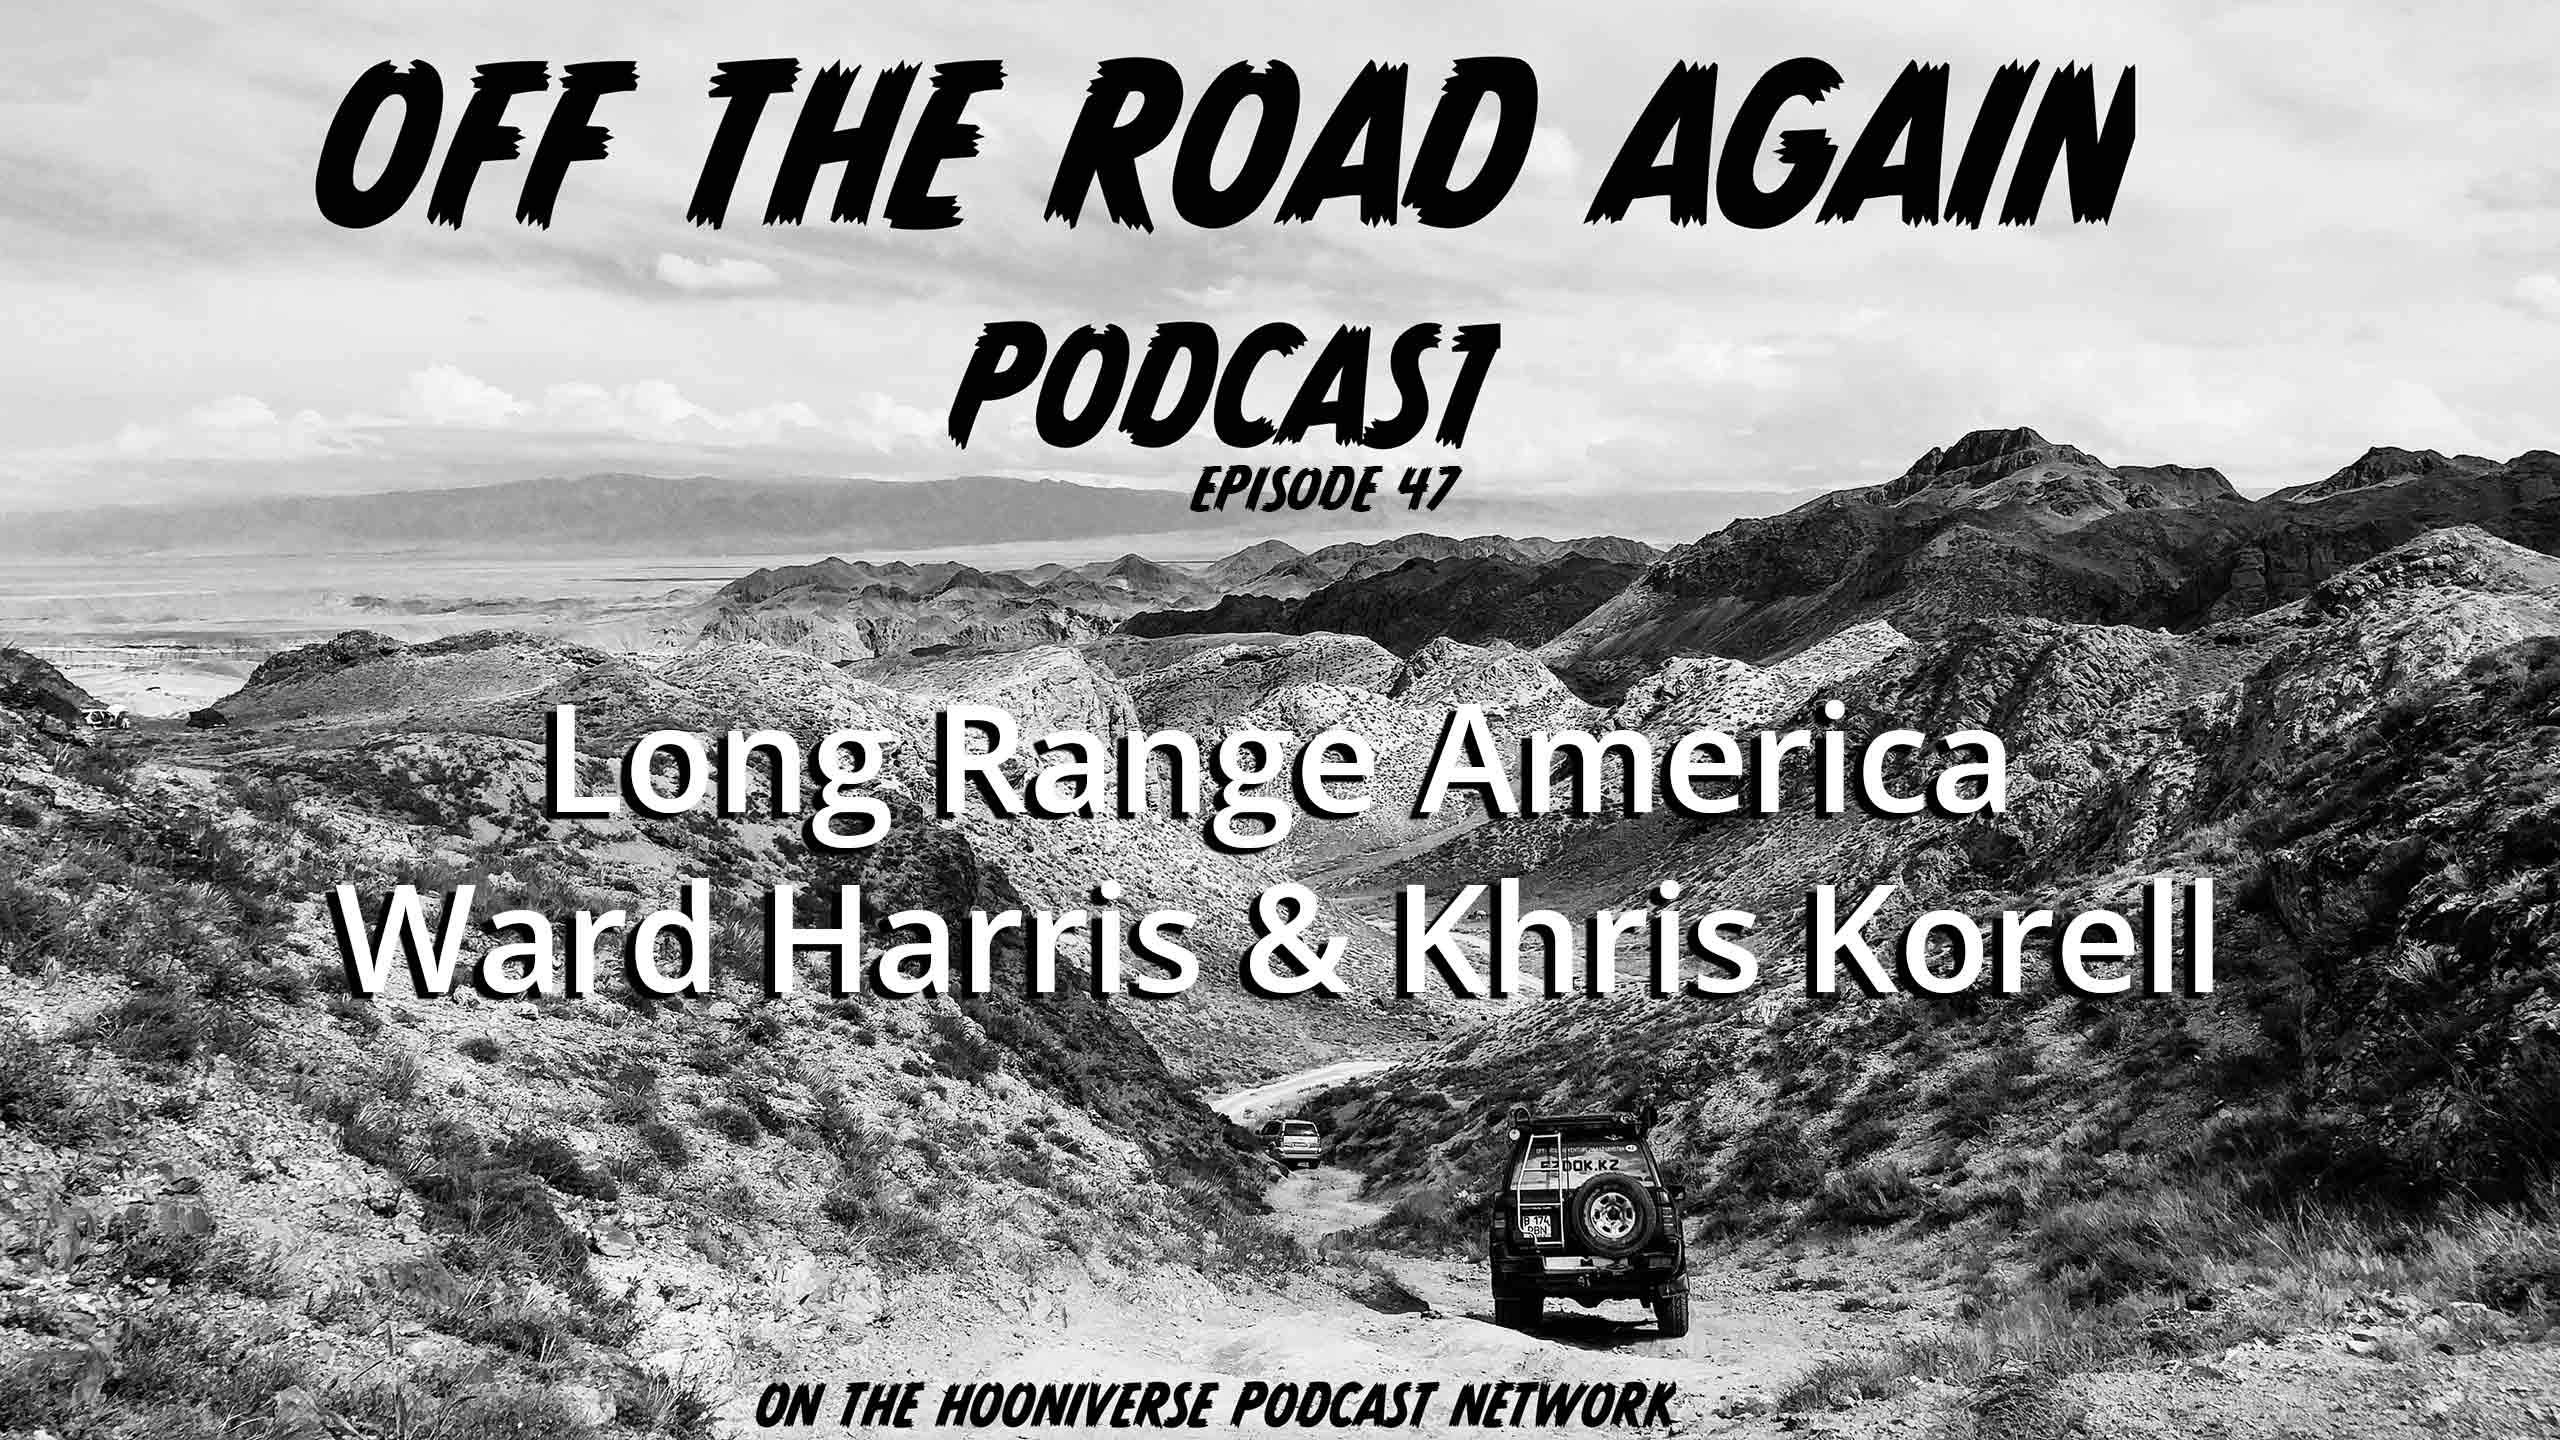 Long-Range-America-Off-The-Road-Again-Podcast-Episode-47